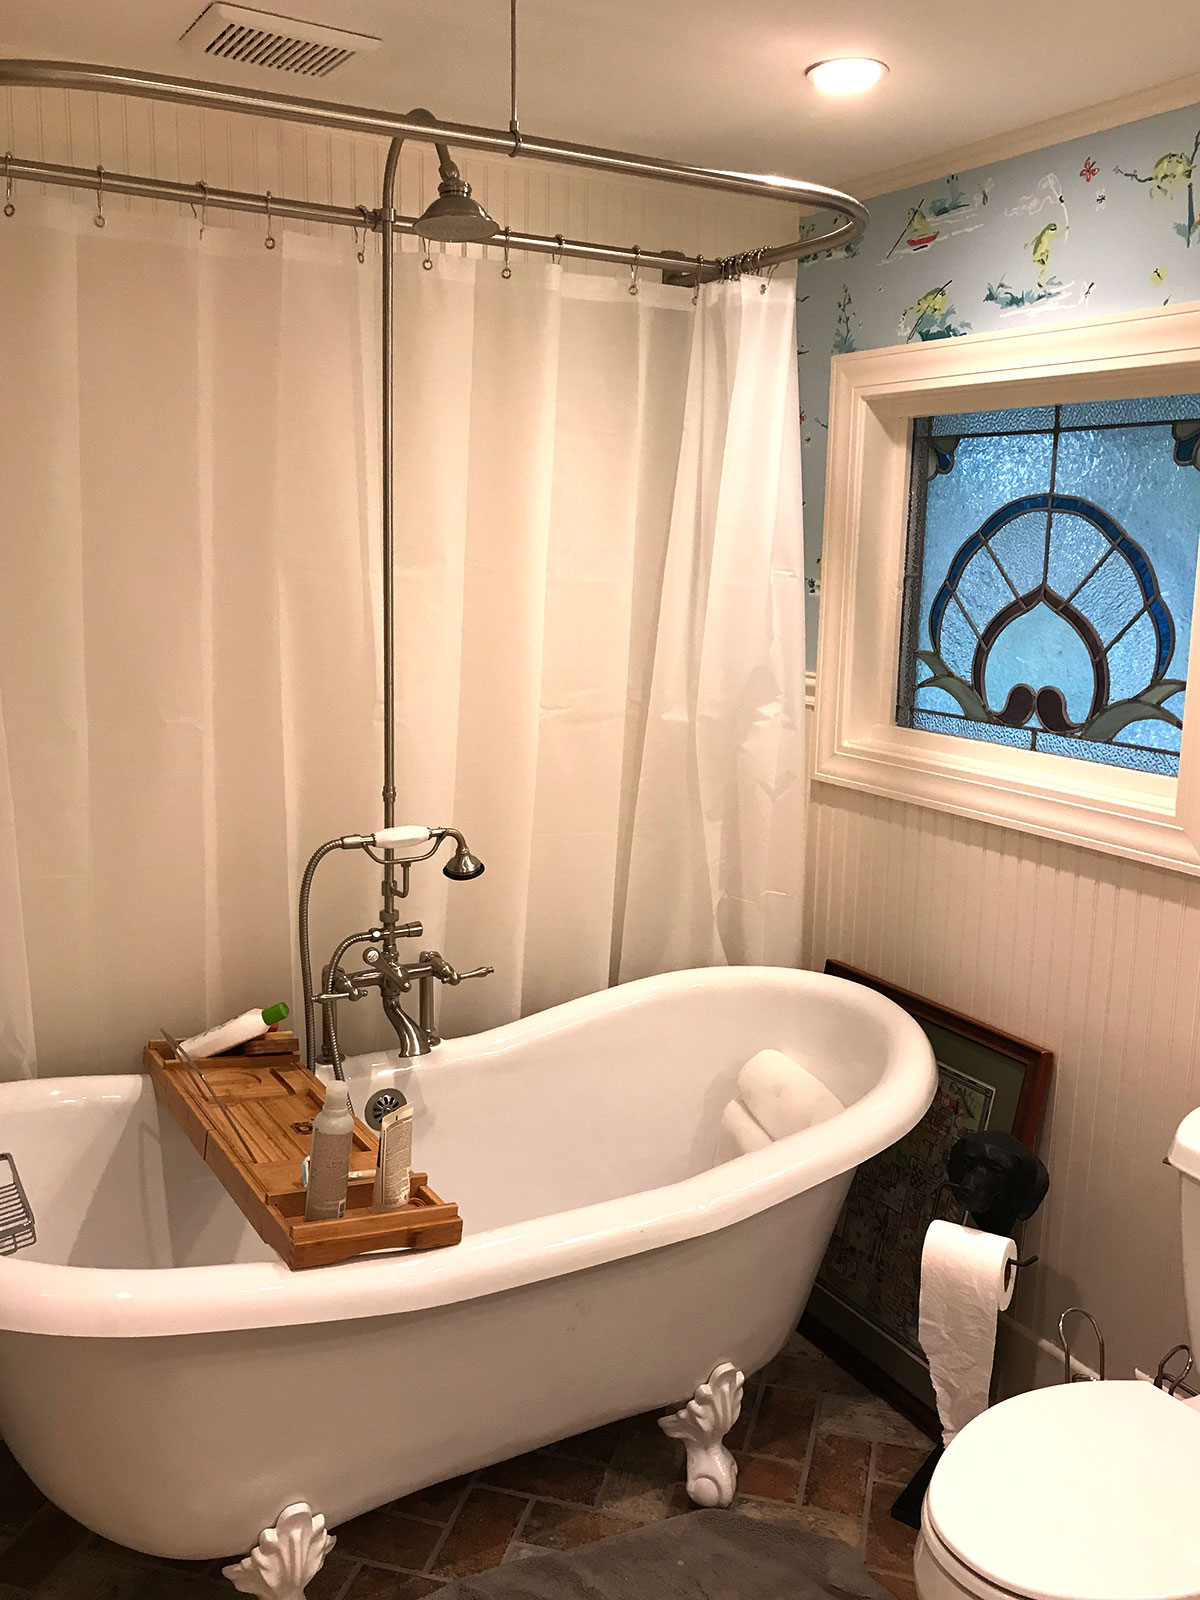 Quiet Sanctuary - Bathroom Updates for a Growing Family